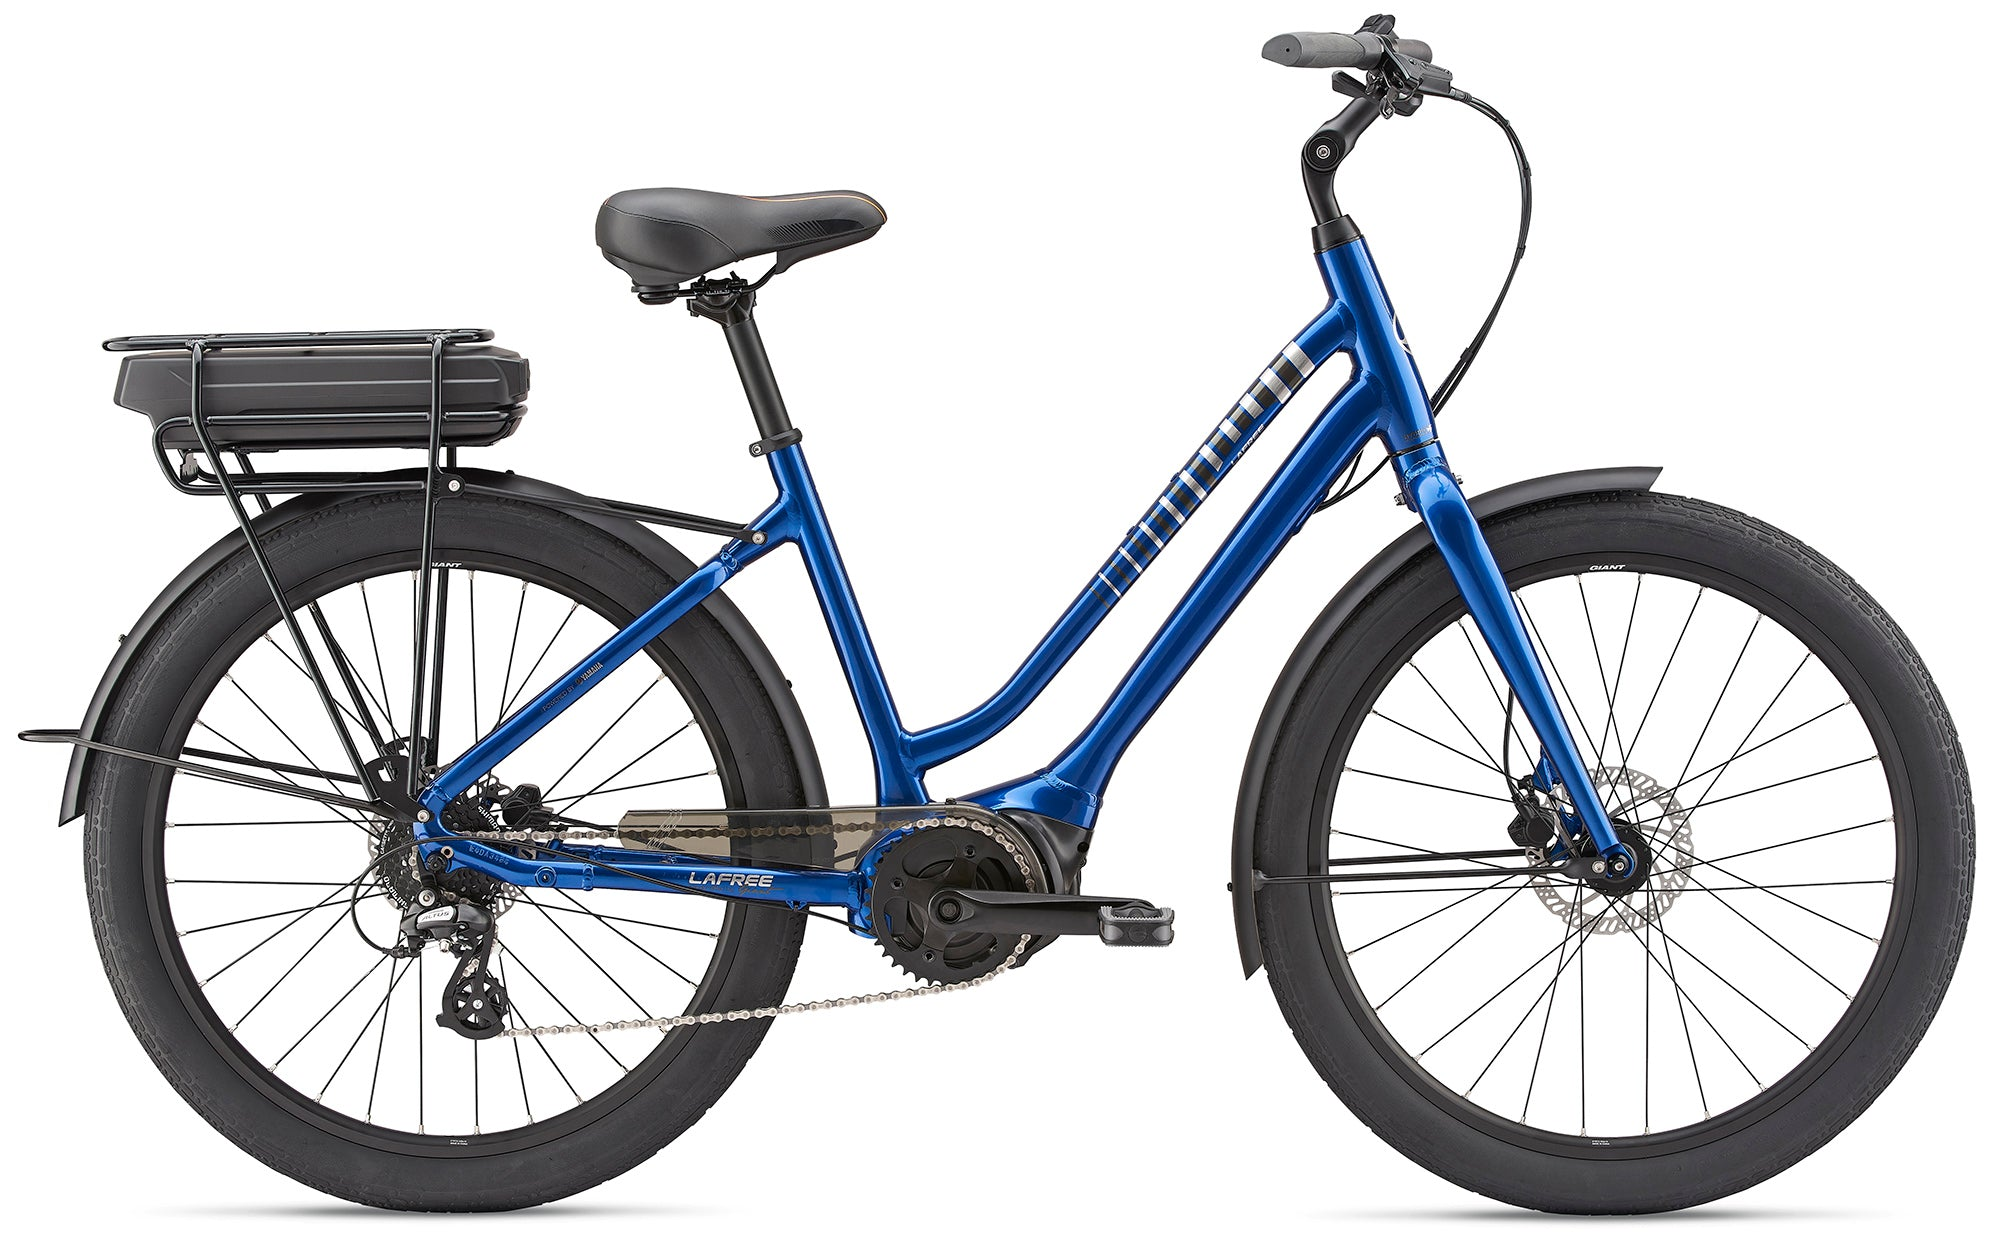 df7b3dbe170 Giant Electric Bikes have arrived – Pushbikes